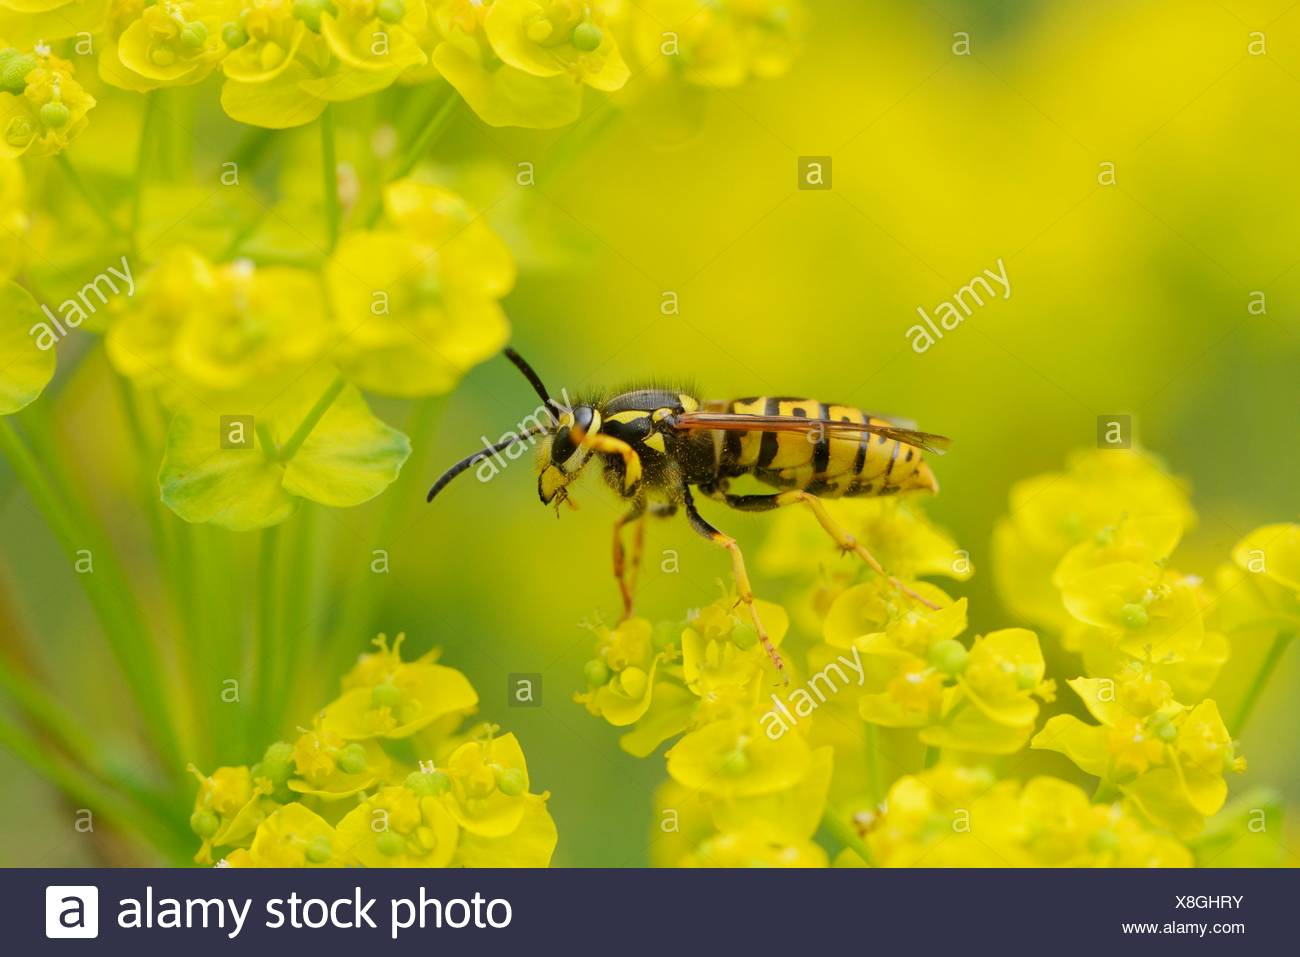 Close-up of a common wasp on a cypress spurge - Stock Image